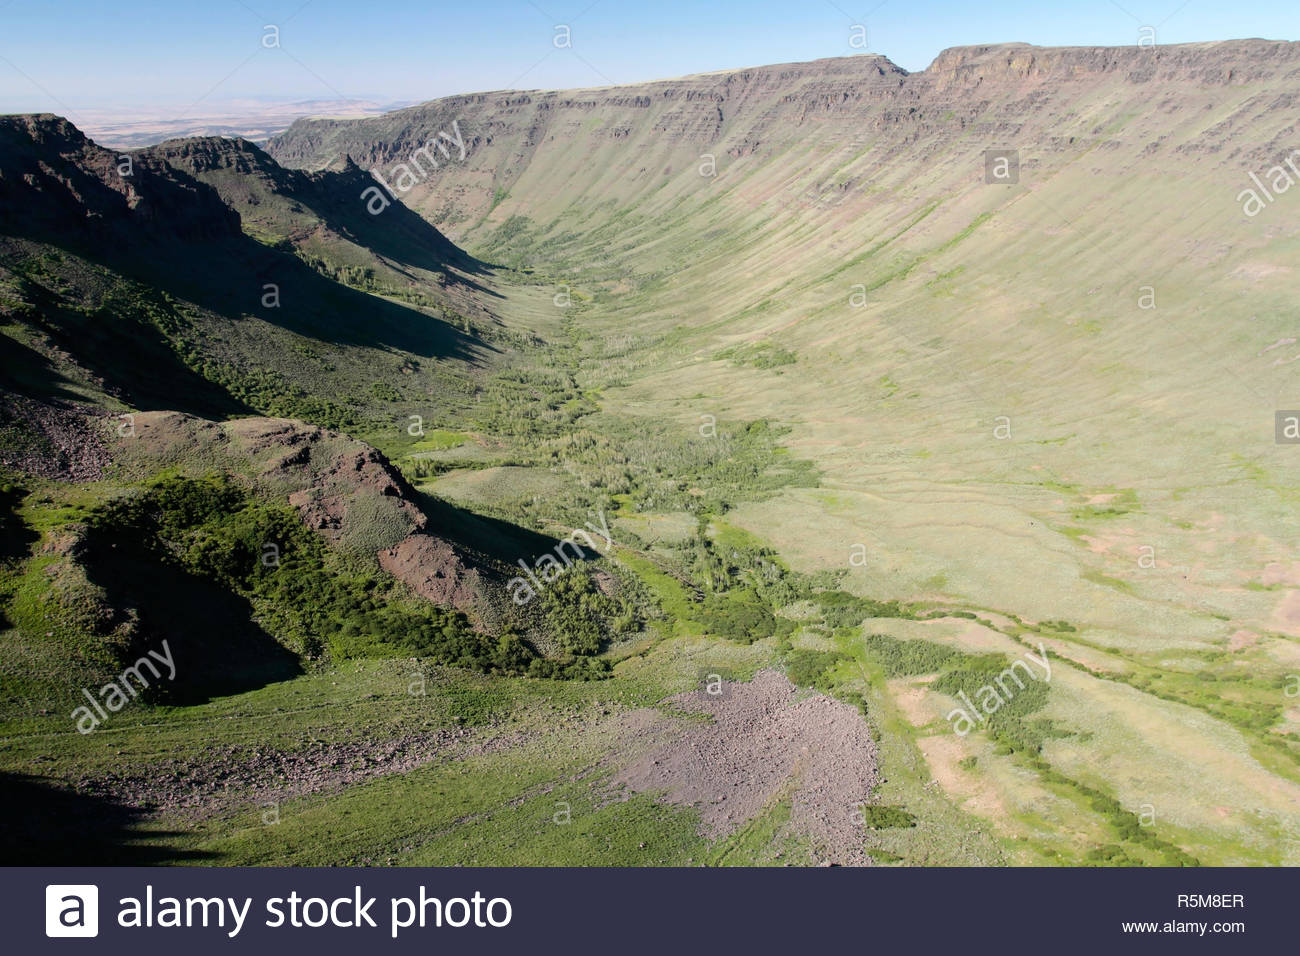 Kiger Gorge, Steens Mountain Wilderness, Bureau of Land Management, Oregon, USA - Stock Image